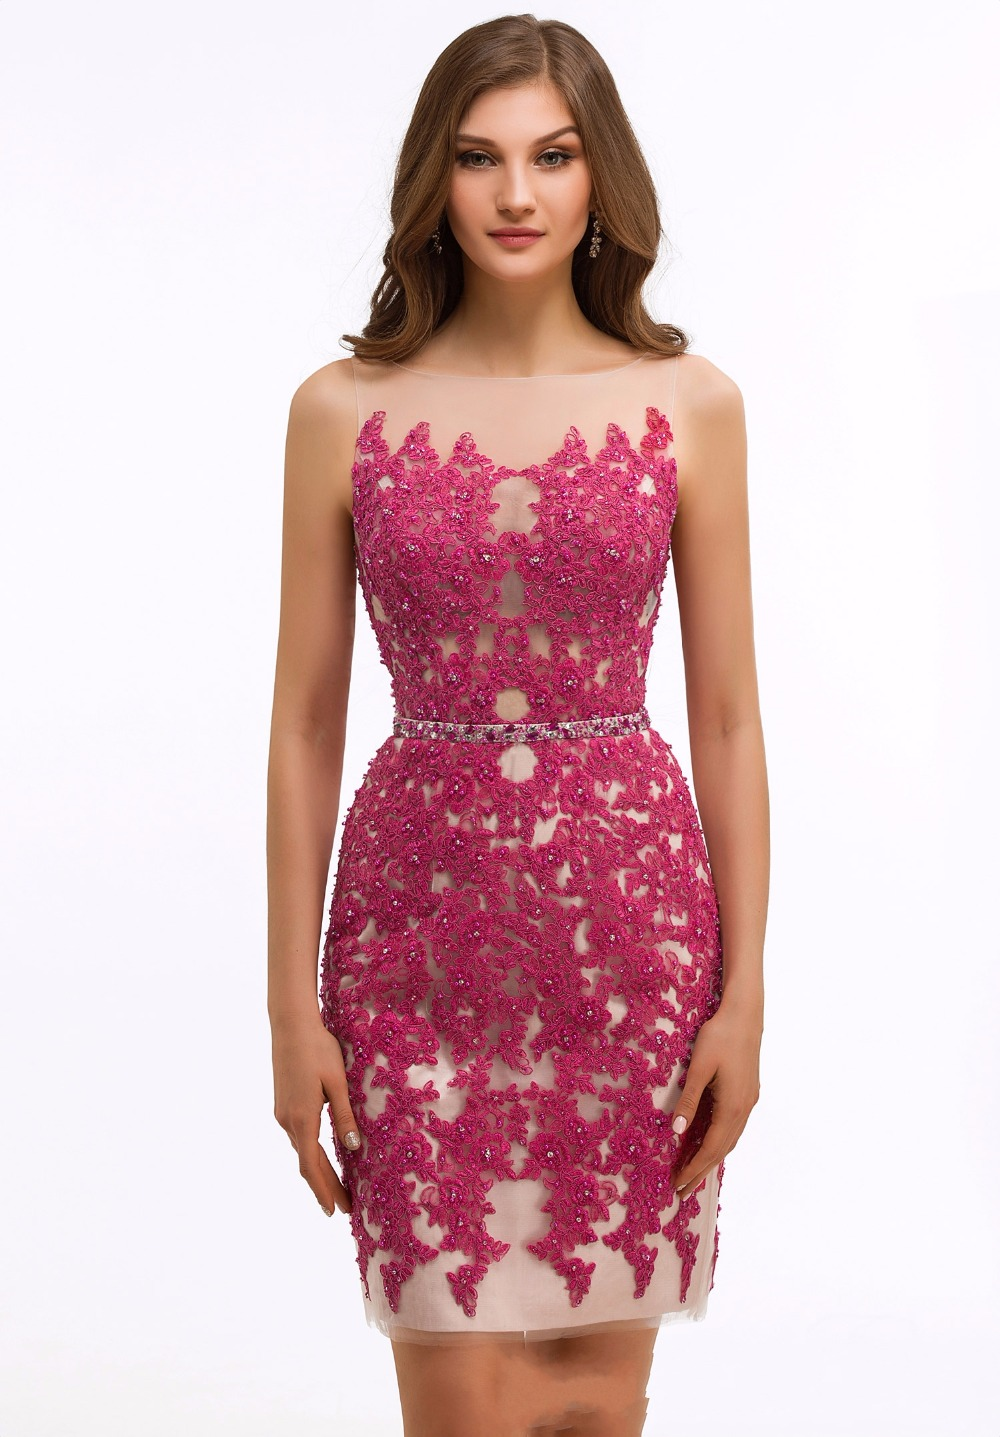 81fe7af4f21 2017 New Sexy Fuchsia Nude Short Cocktail Party Dresses Sleeves Sheer  Beaded Lace Tight Fitted Cocktail Dresses Robe De Cocktail-in Cocktail  Dresses from ...